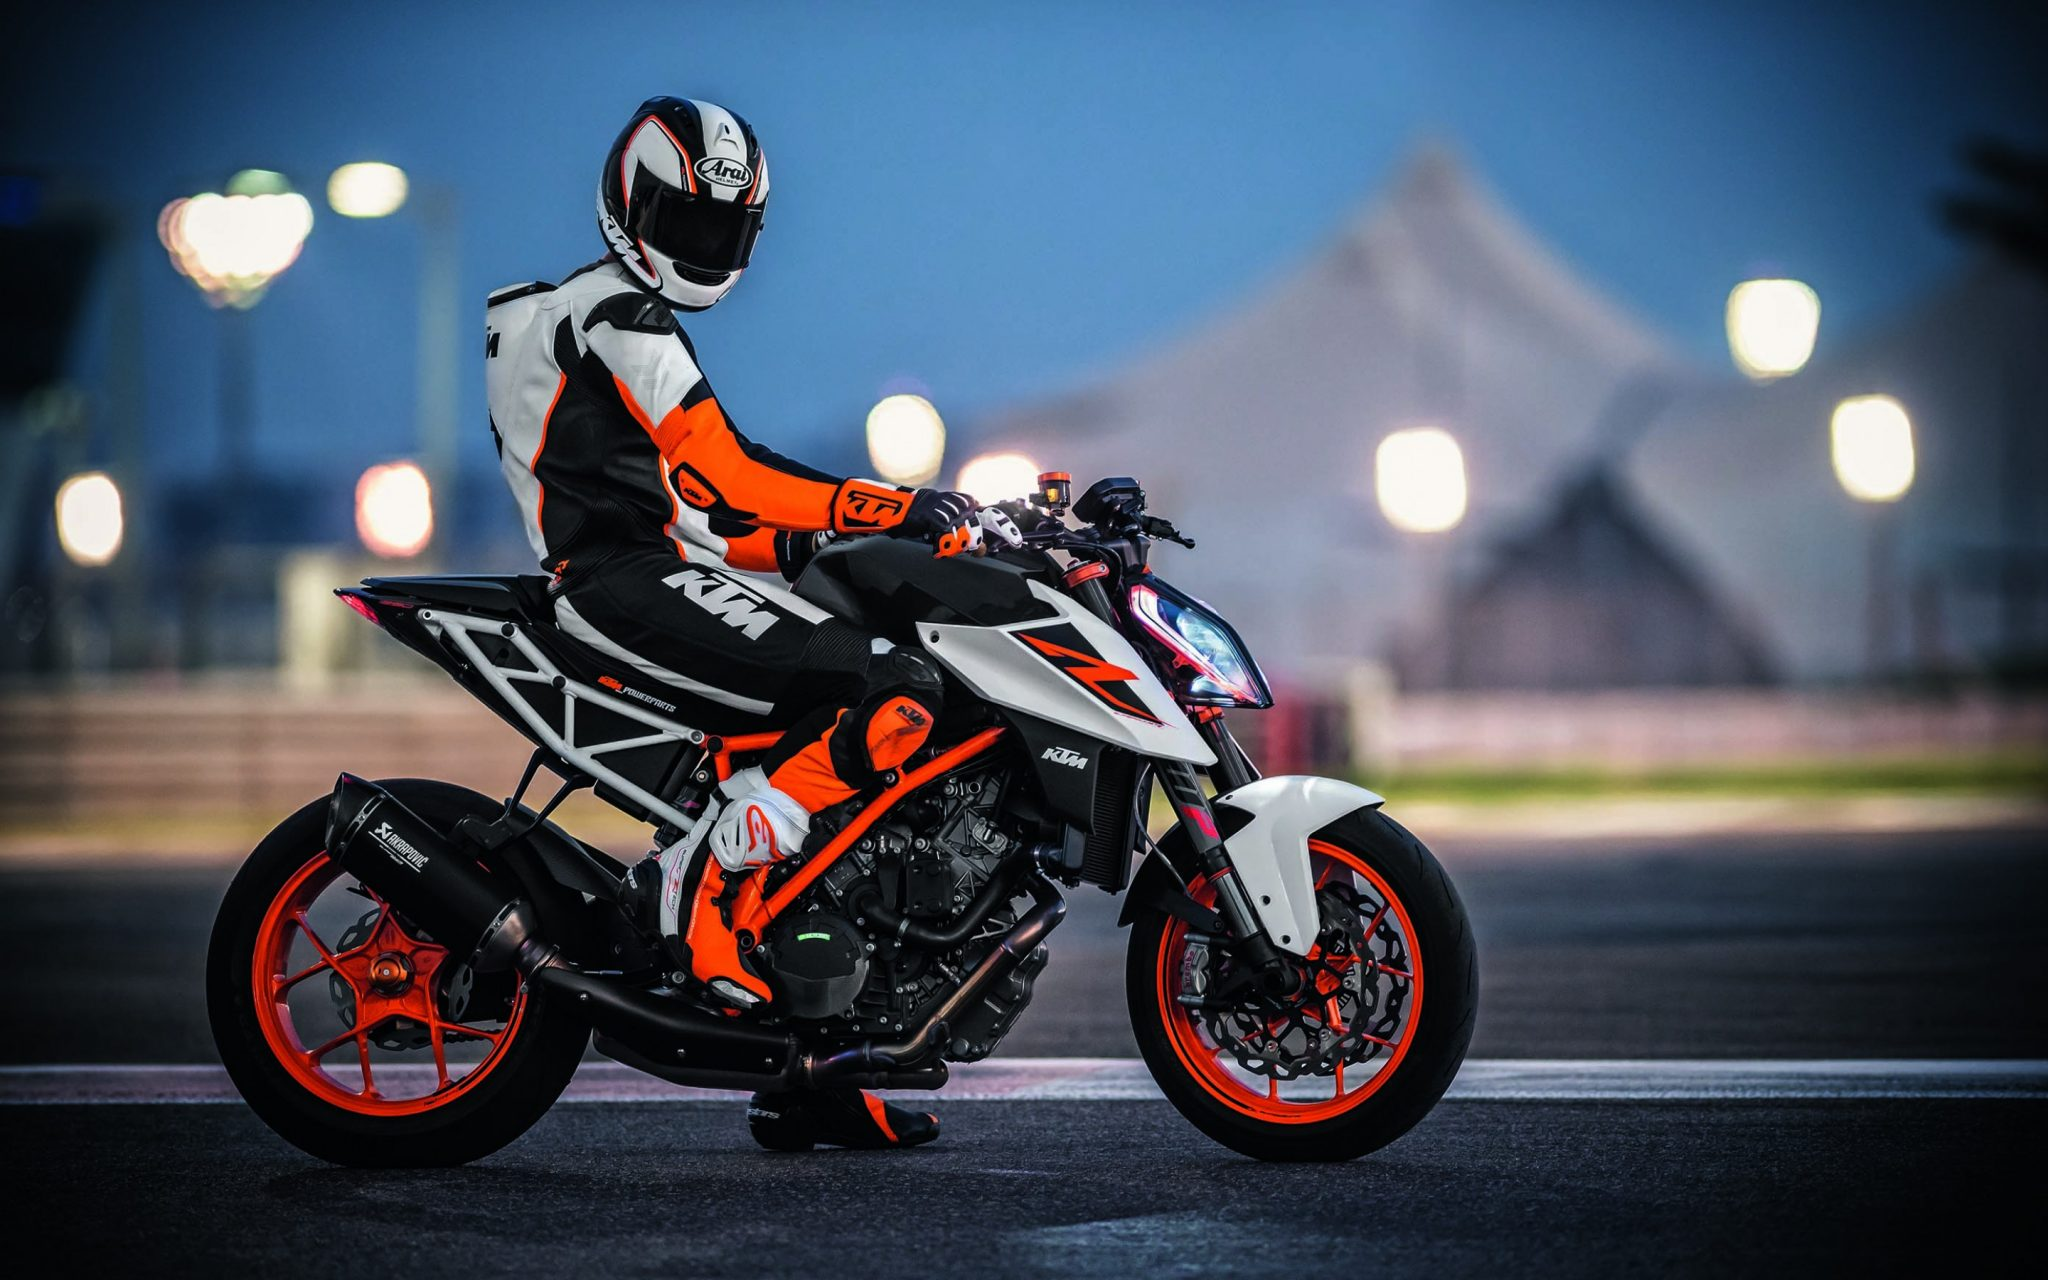 KTM's new Euro5 compliant Super Duke R spied during testing